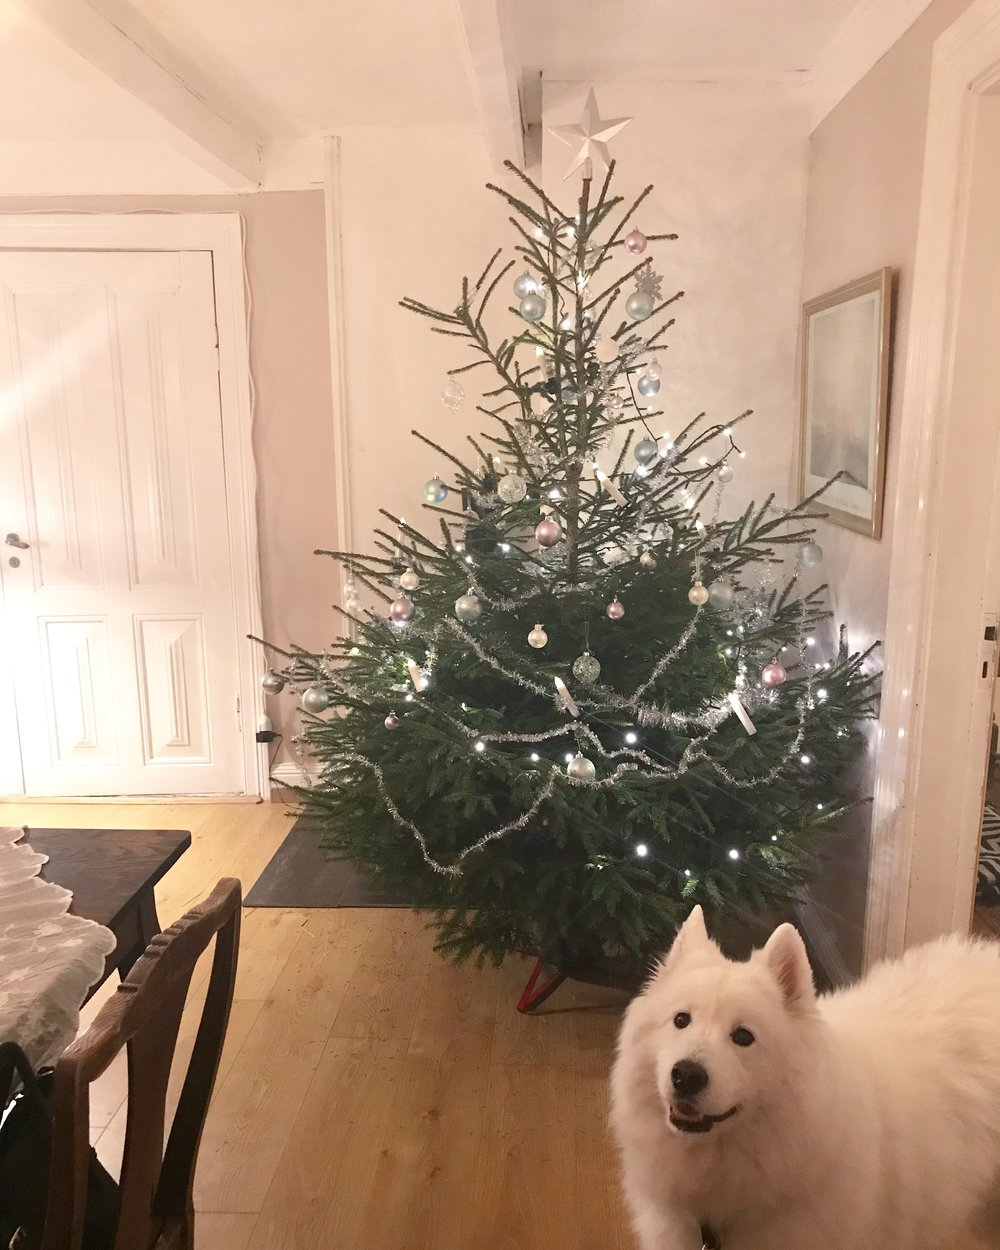 My samoyed Kit looking forward to a new sustainable Christmas